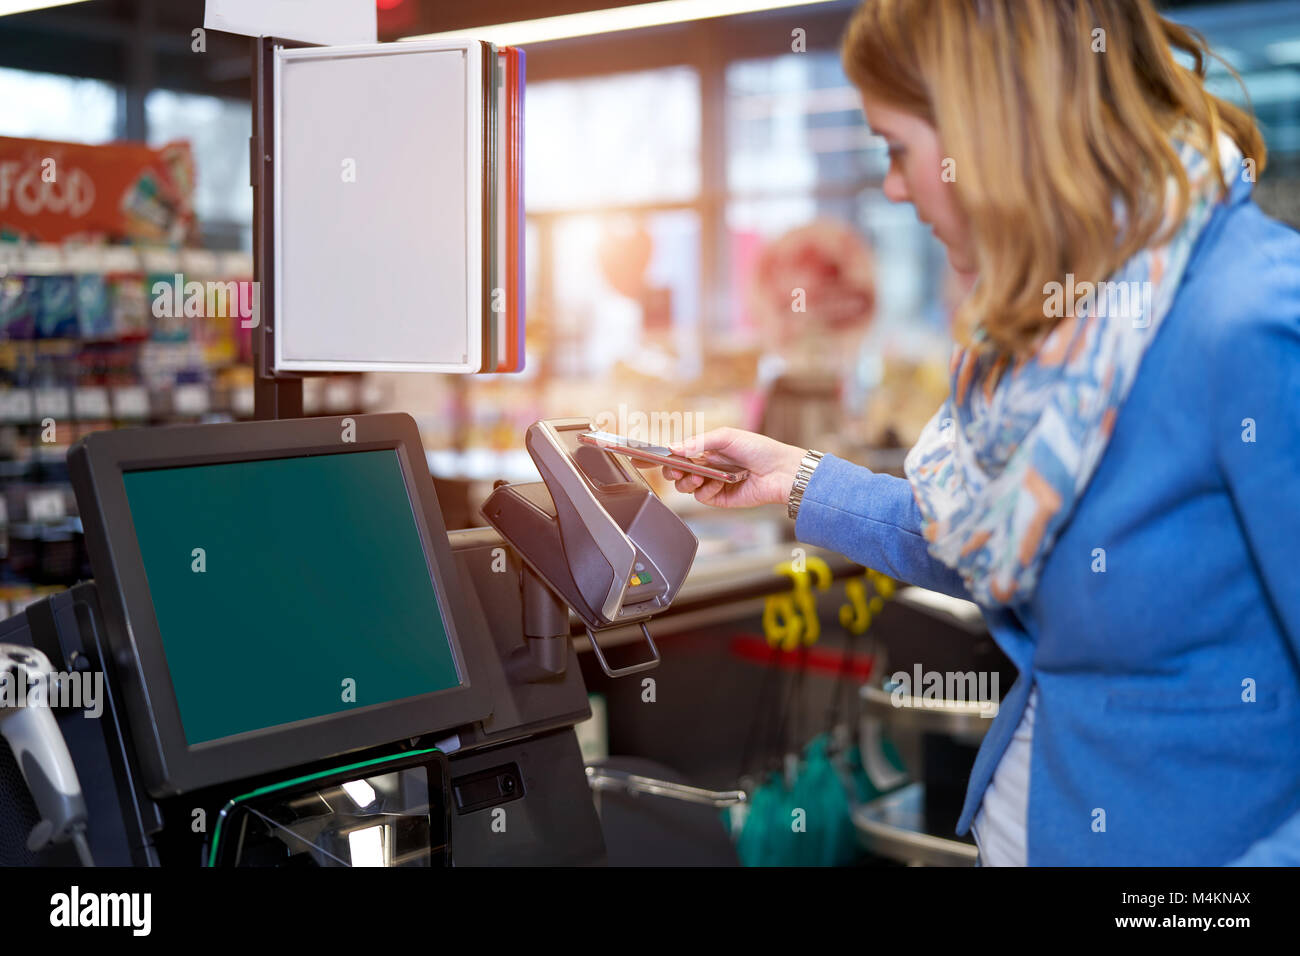 Self Checkout Grocery Store Stock Photos & Self Checkout ...